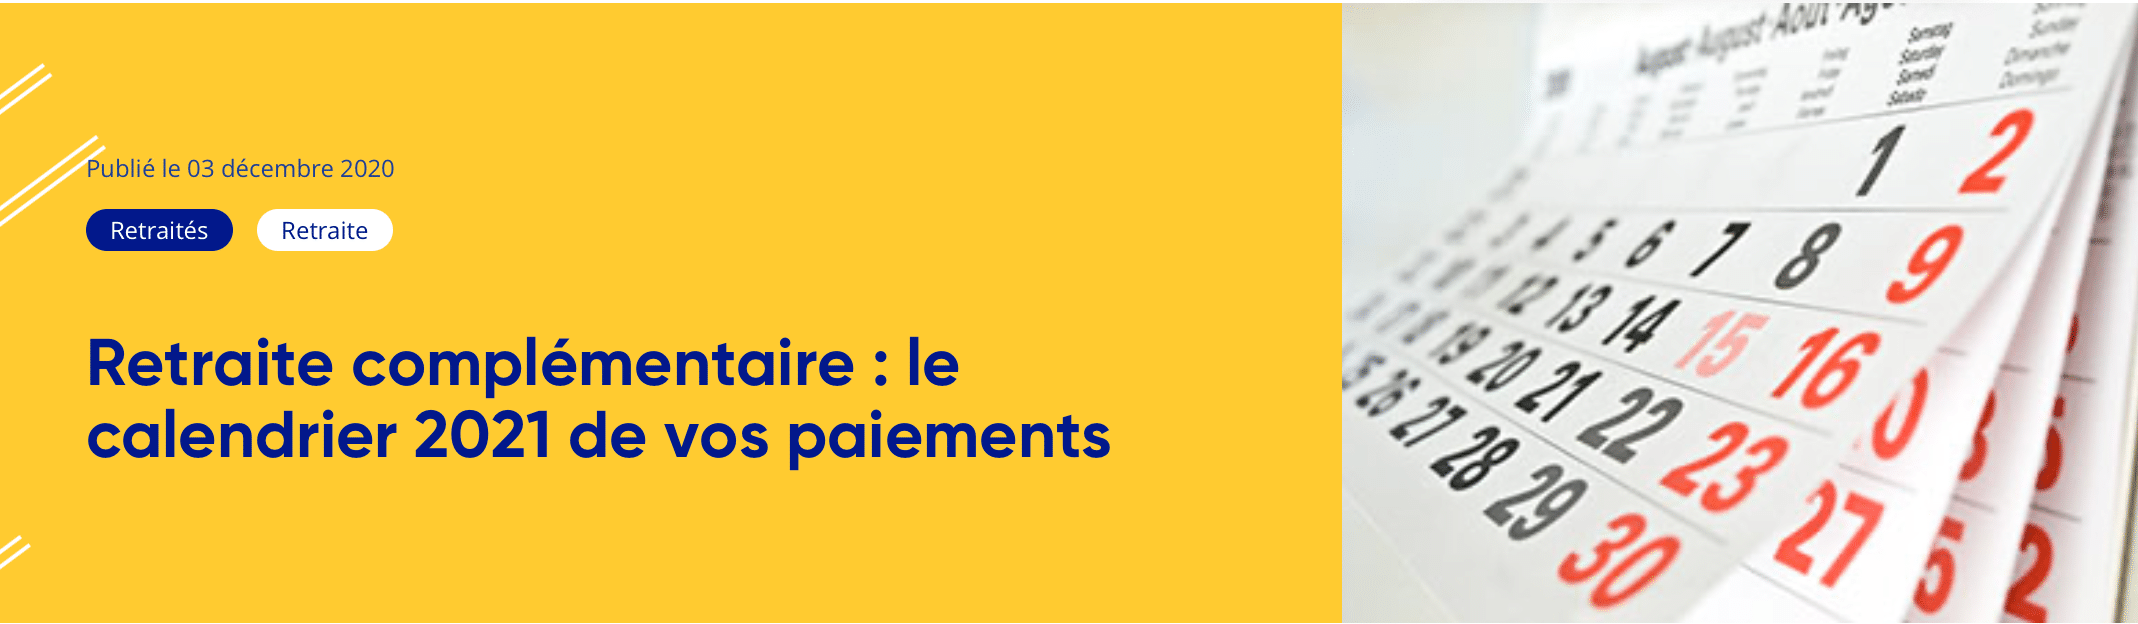 Calendrier Paiement Humanis 2022 Calendrier may 2021: Humanis Calendrier Paiements 2021